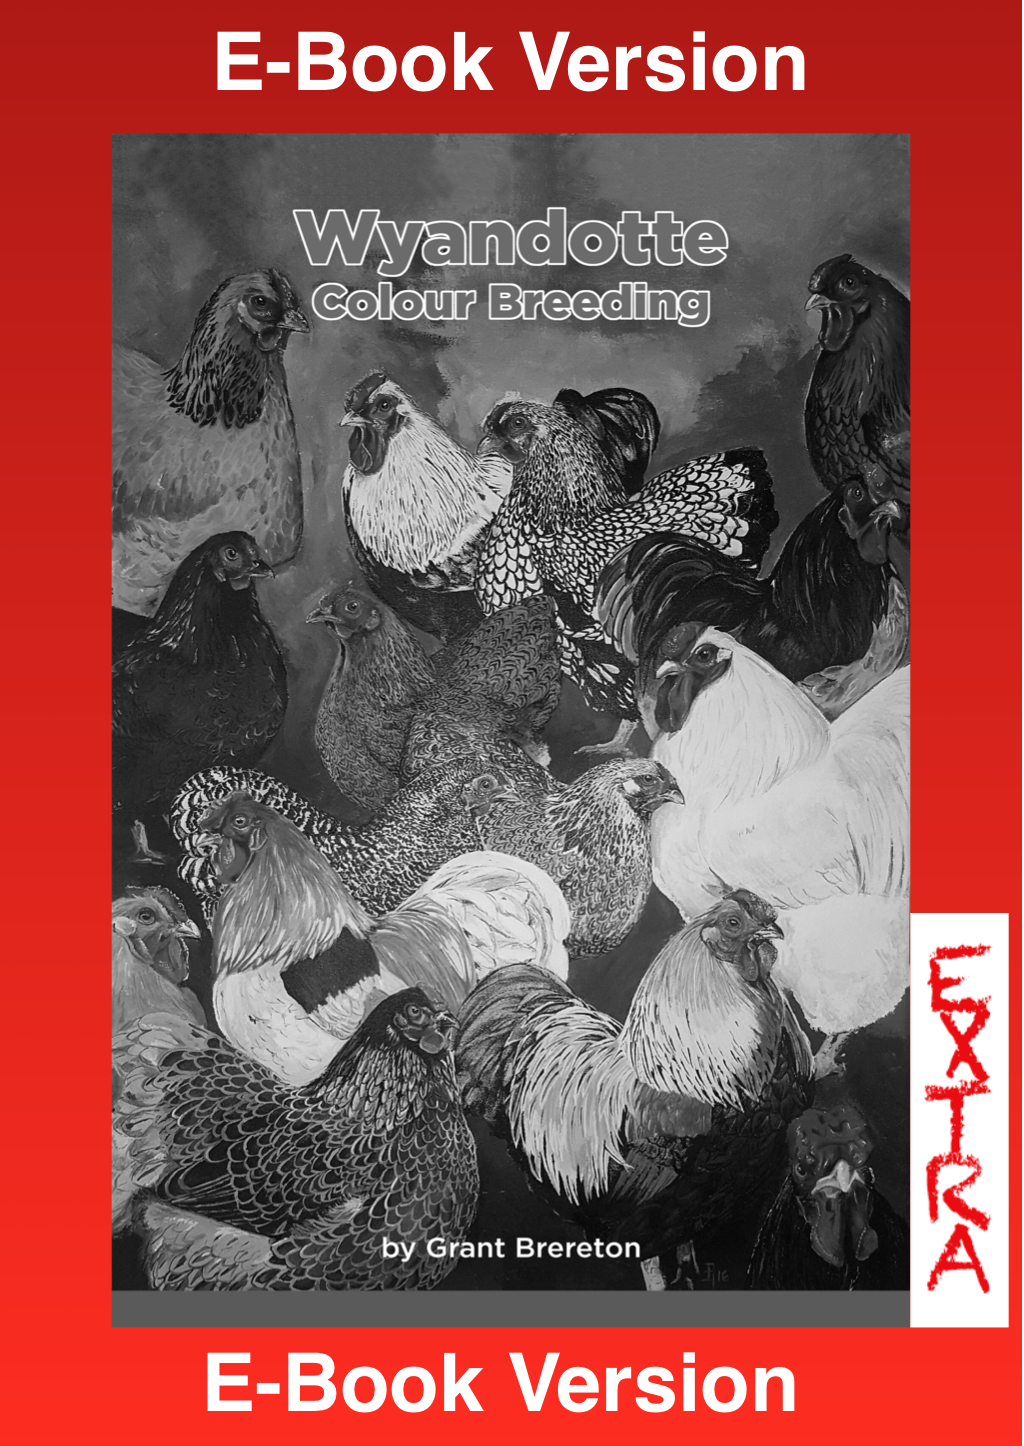 Wyandotte Colour Breeding EXTRA E-Book